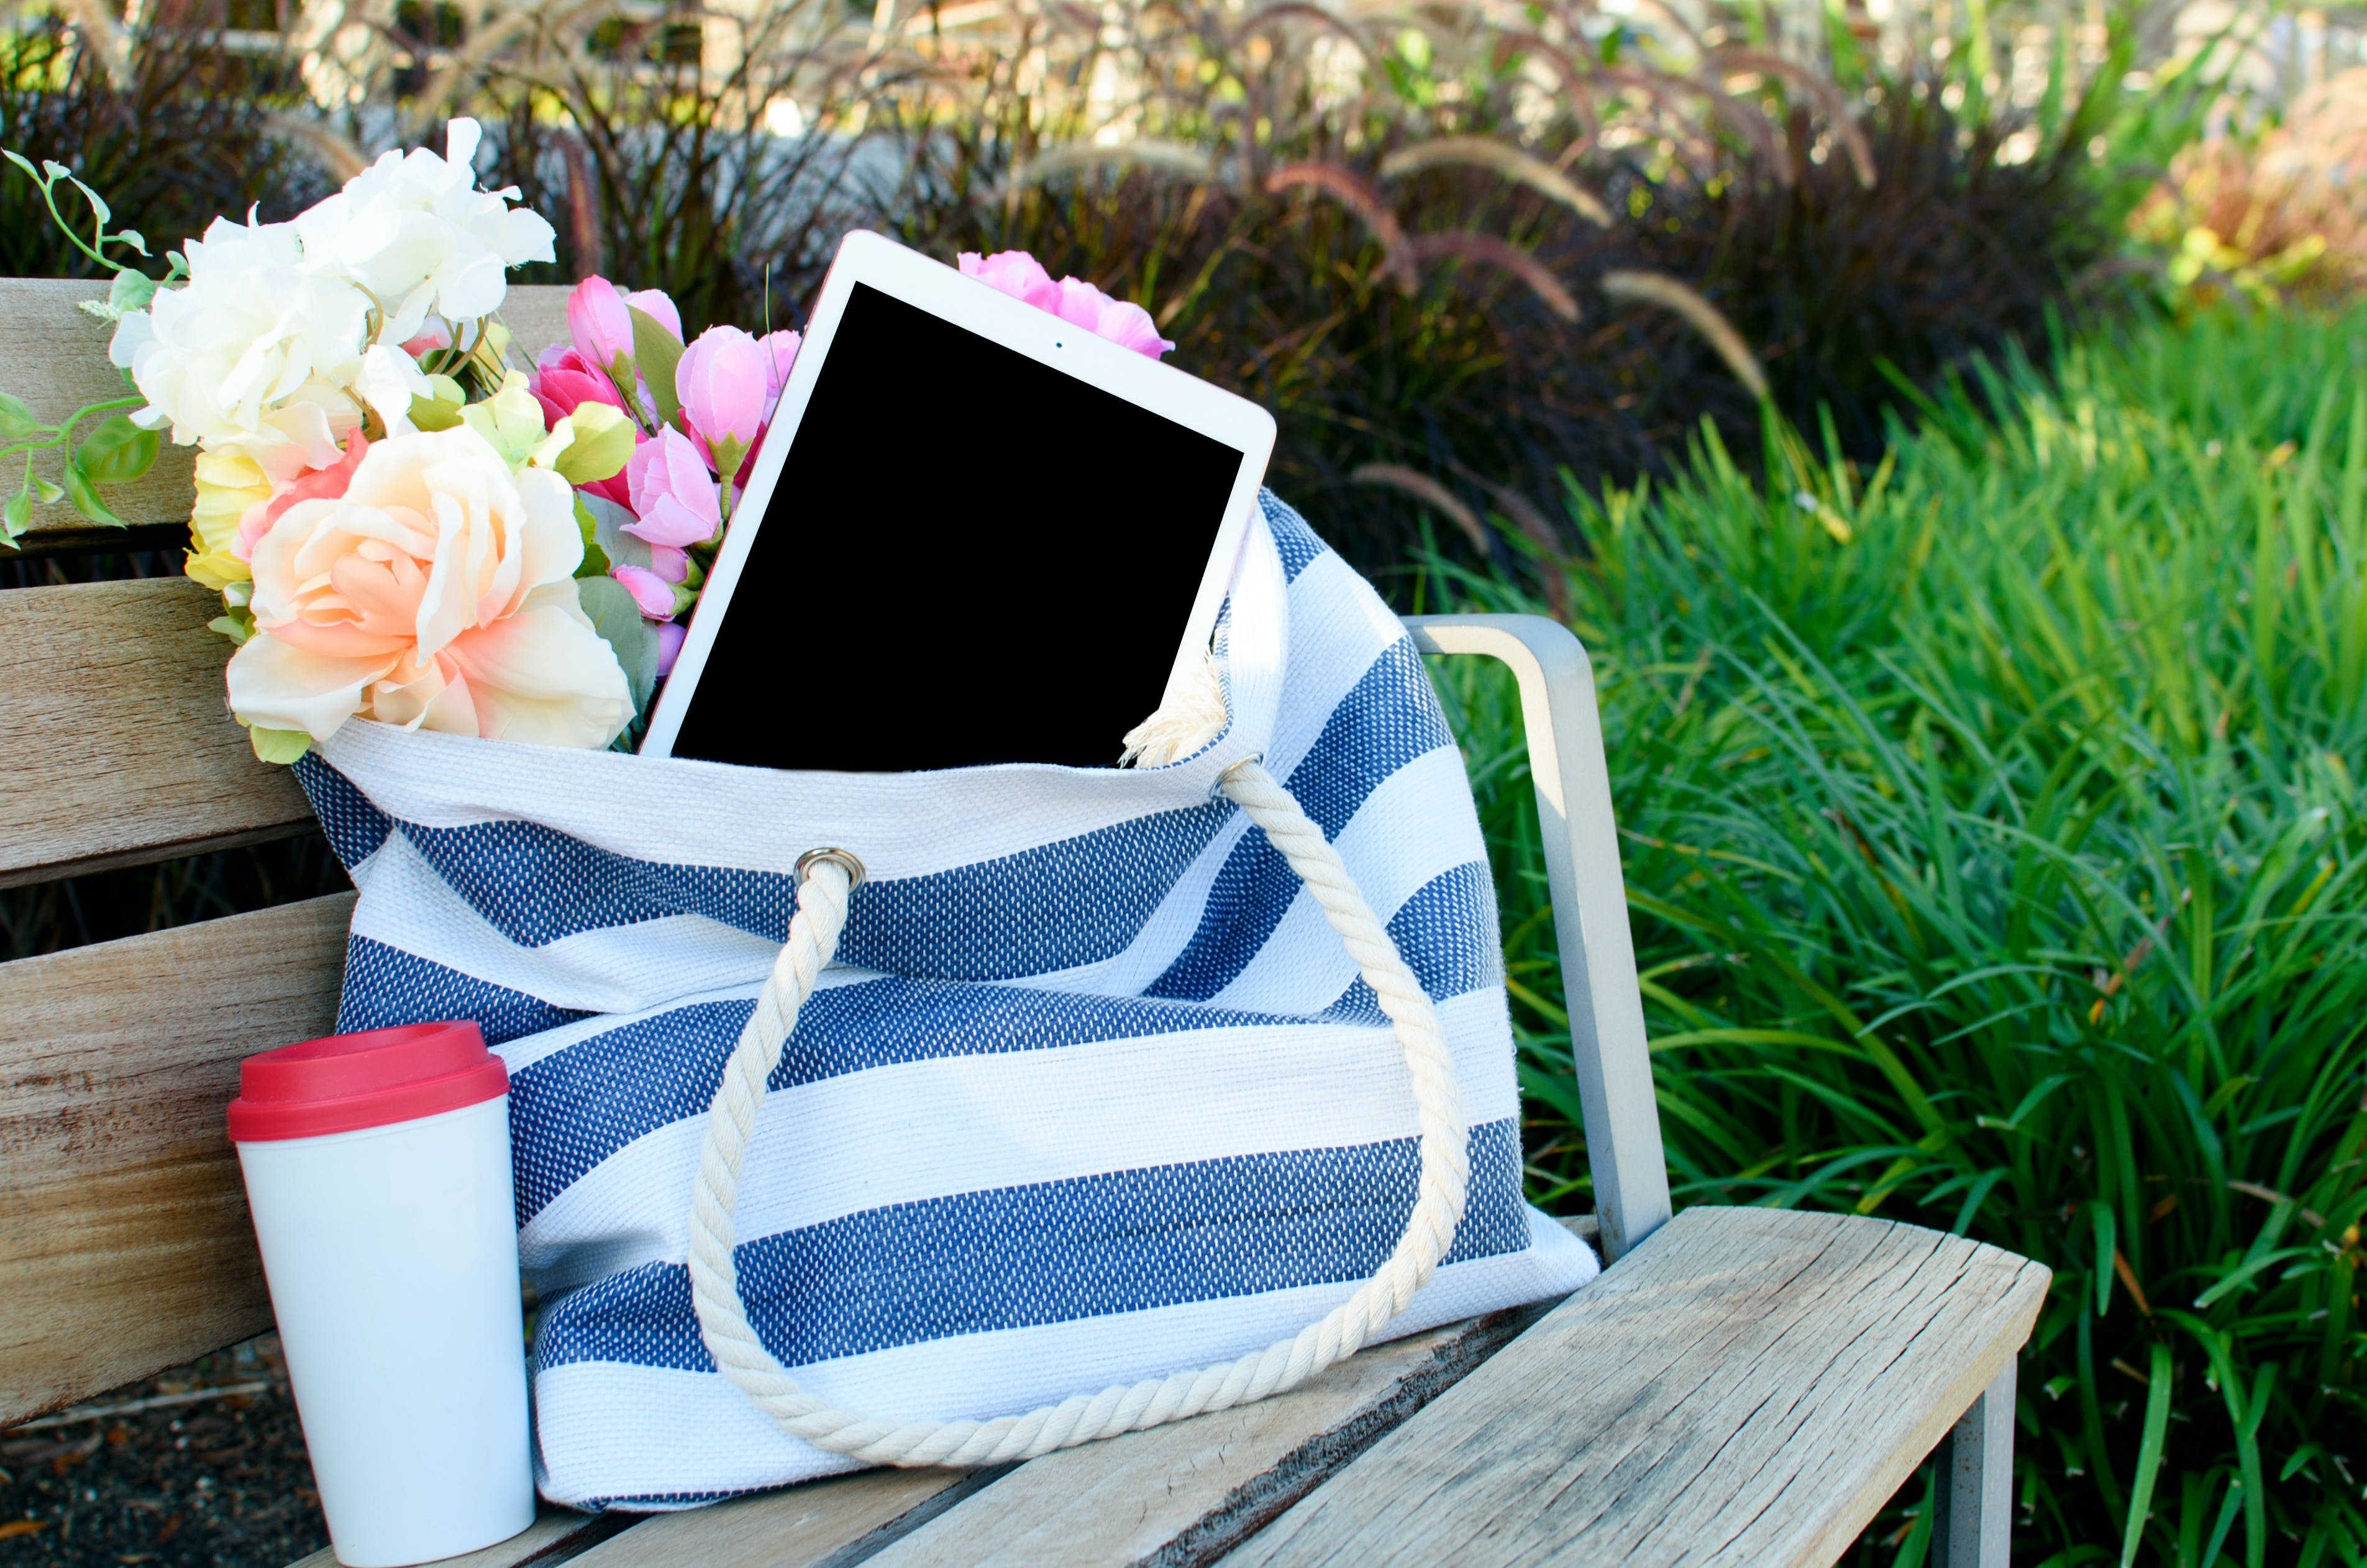 White Ipad With Black Screen in Tote Bag